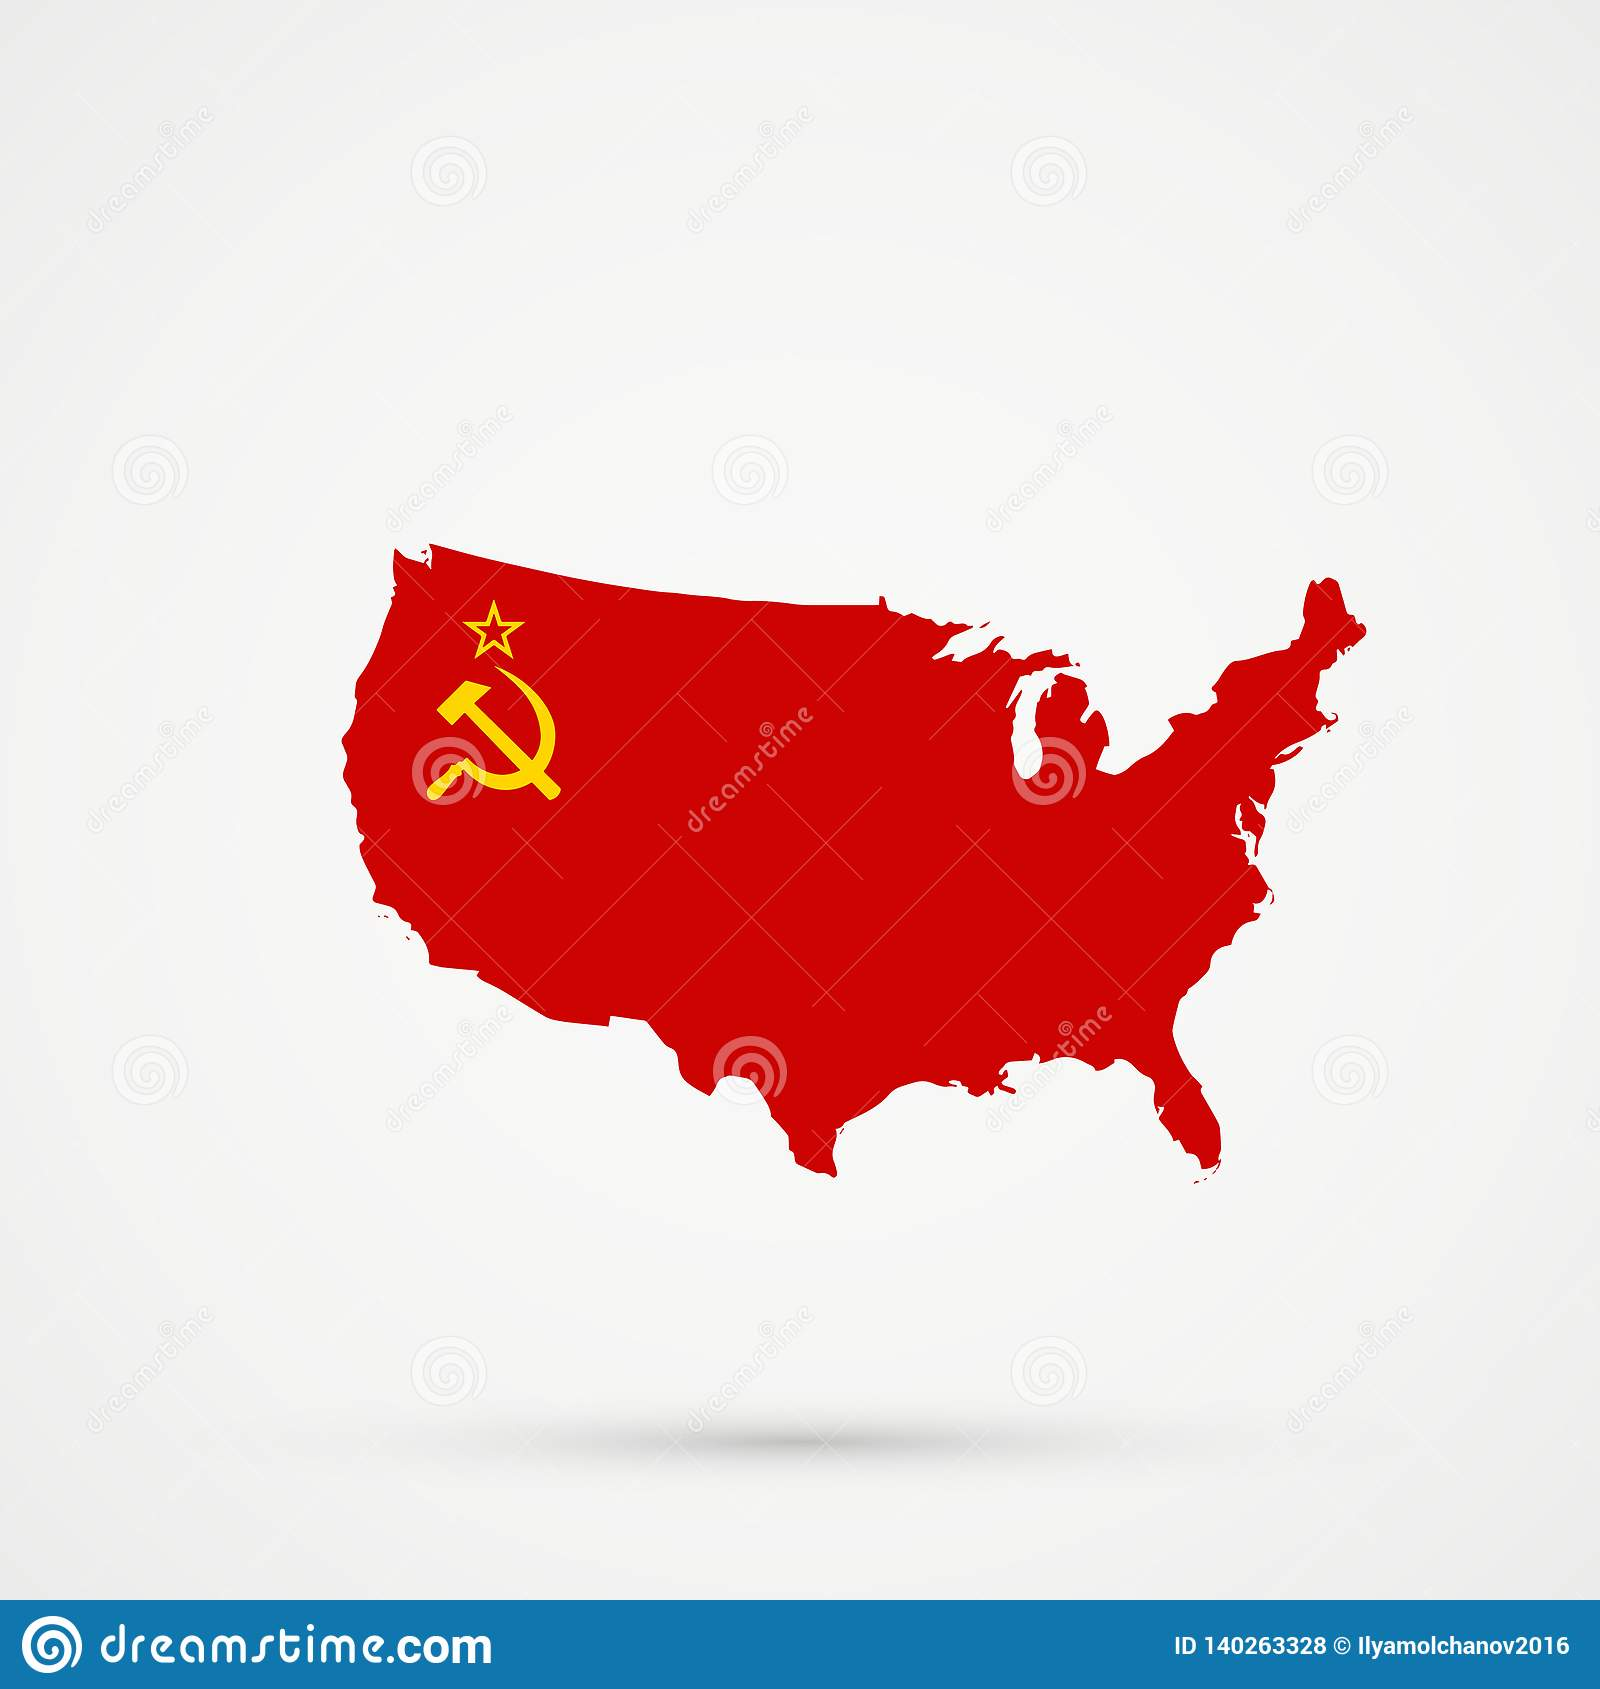 United States Of America USA Map In Union Of Soviet Socialist